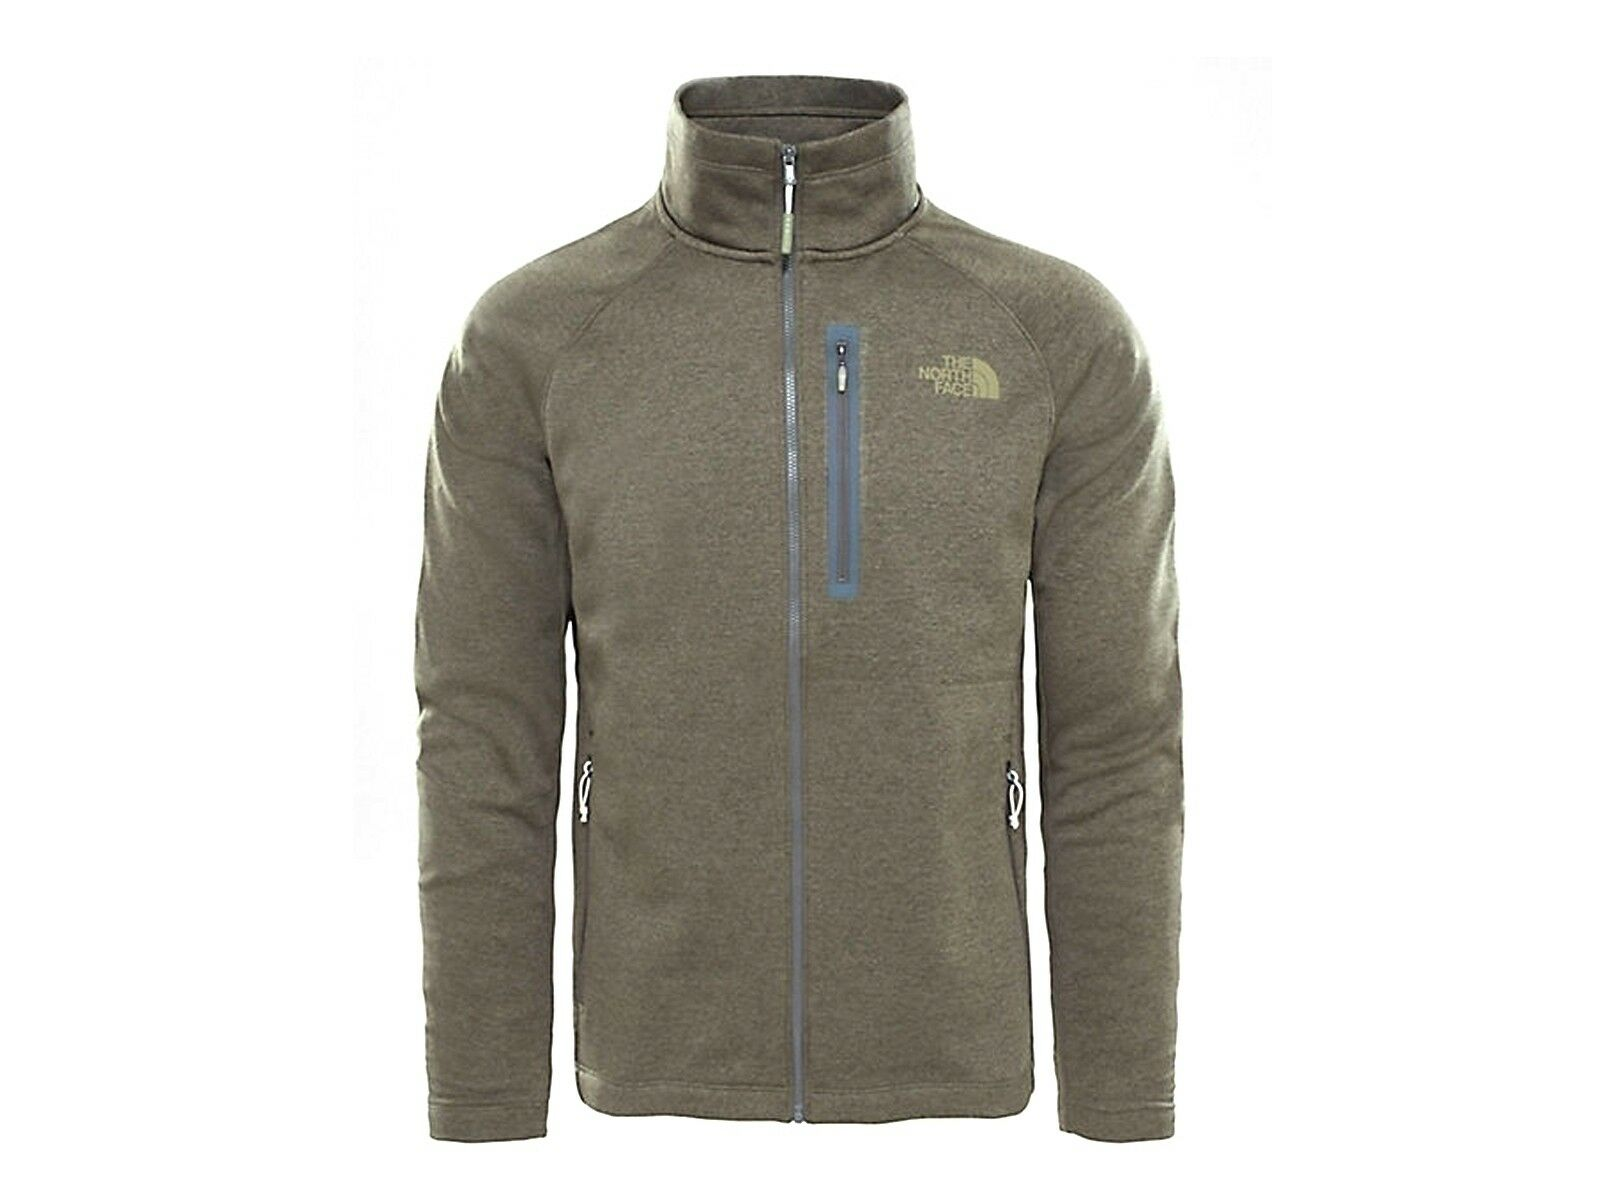 GIACCA UOMO THE NORTH FACE INVERNO 2ZVV7D0  CANYONLANDS NEW TAUPE verde HEATHER